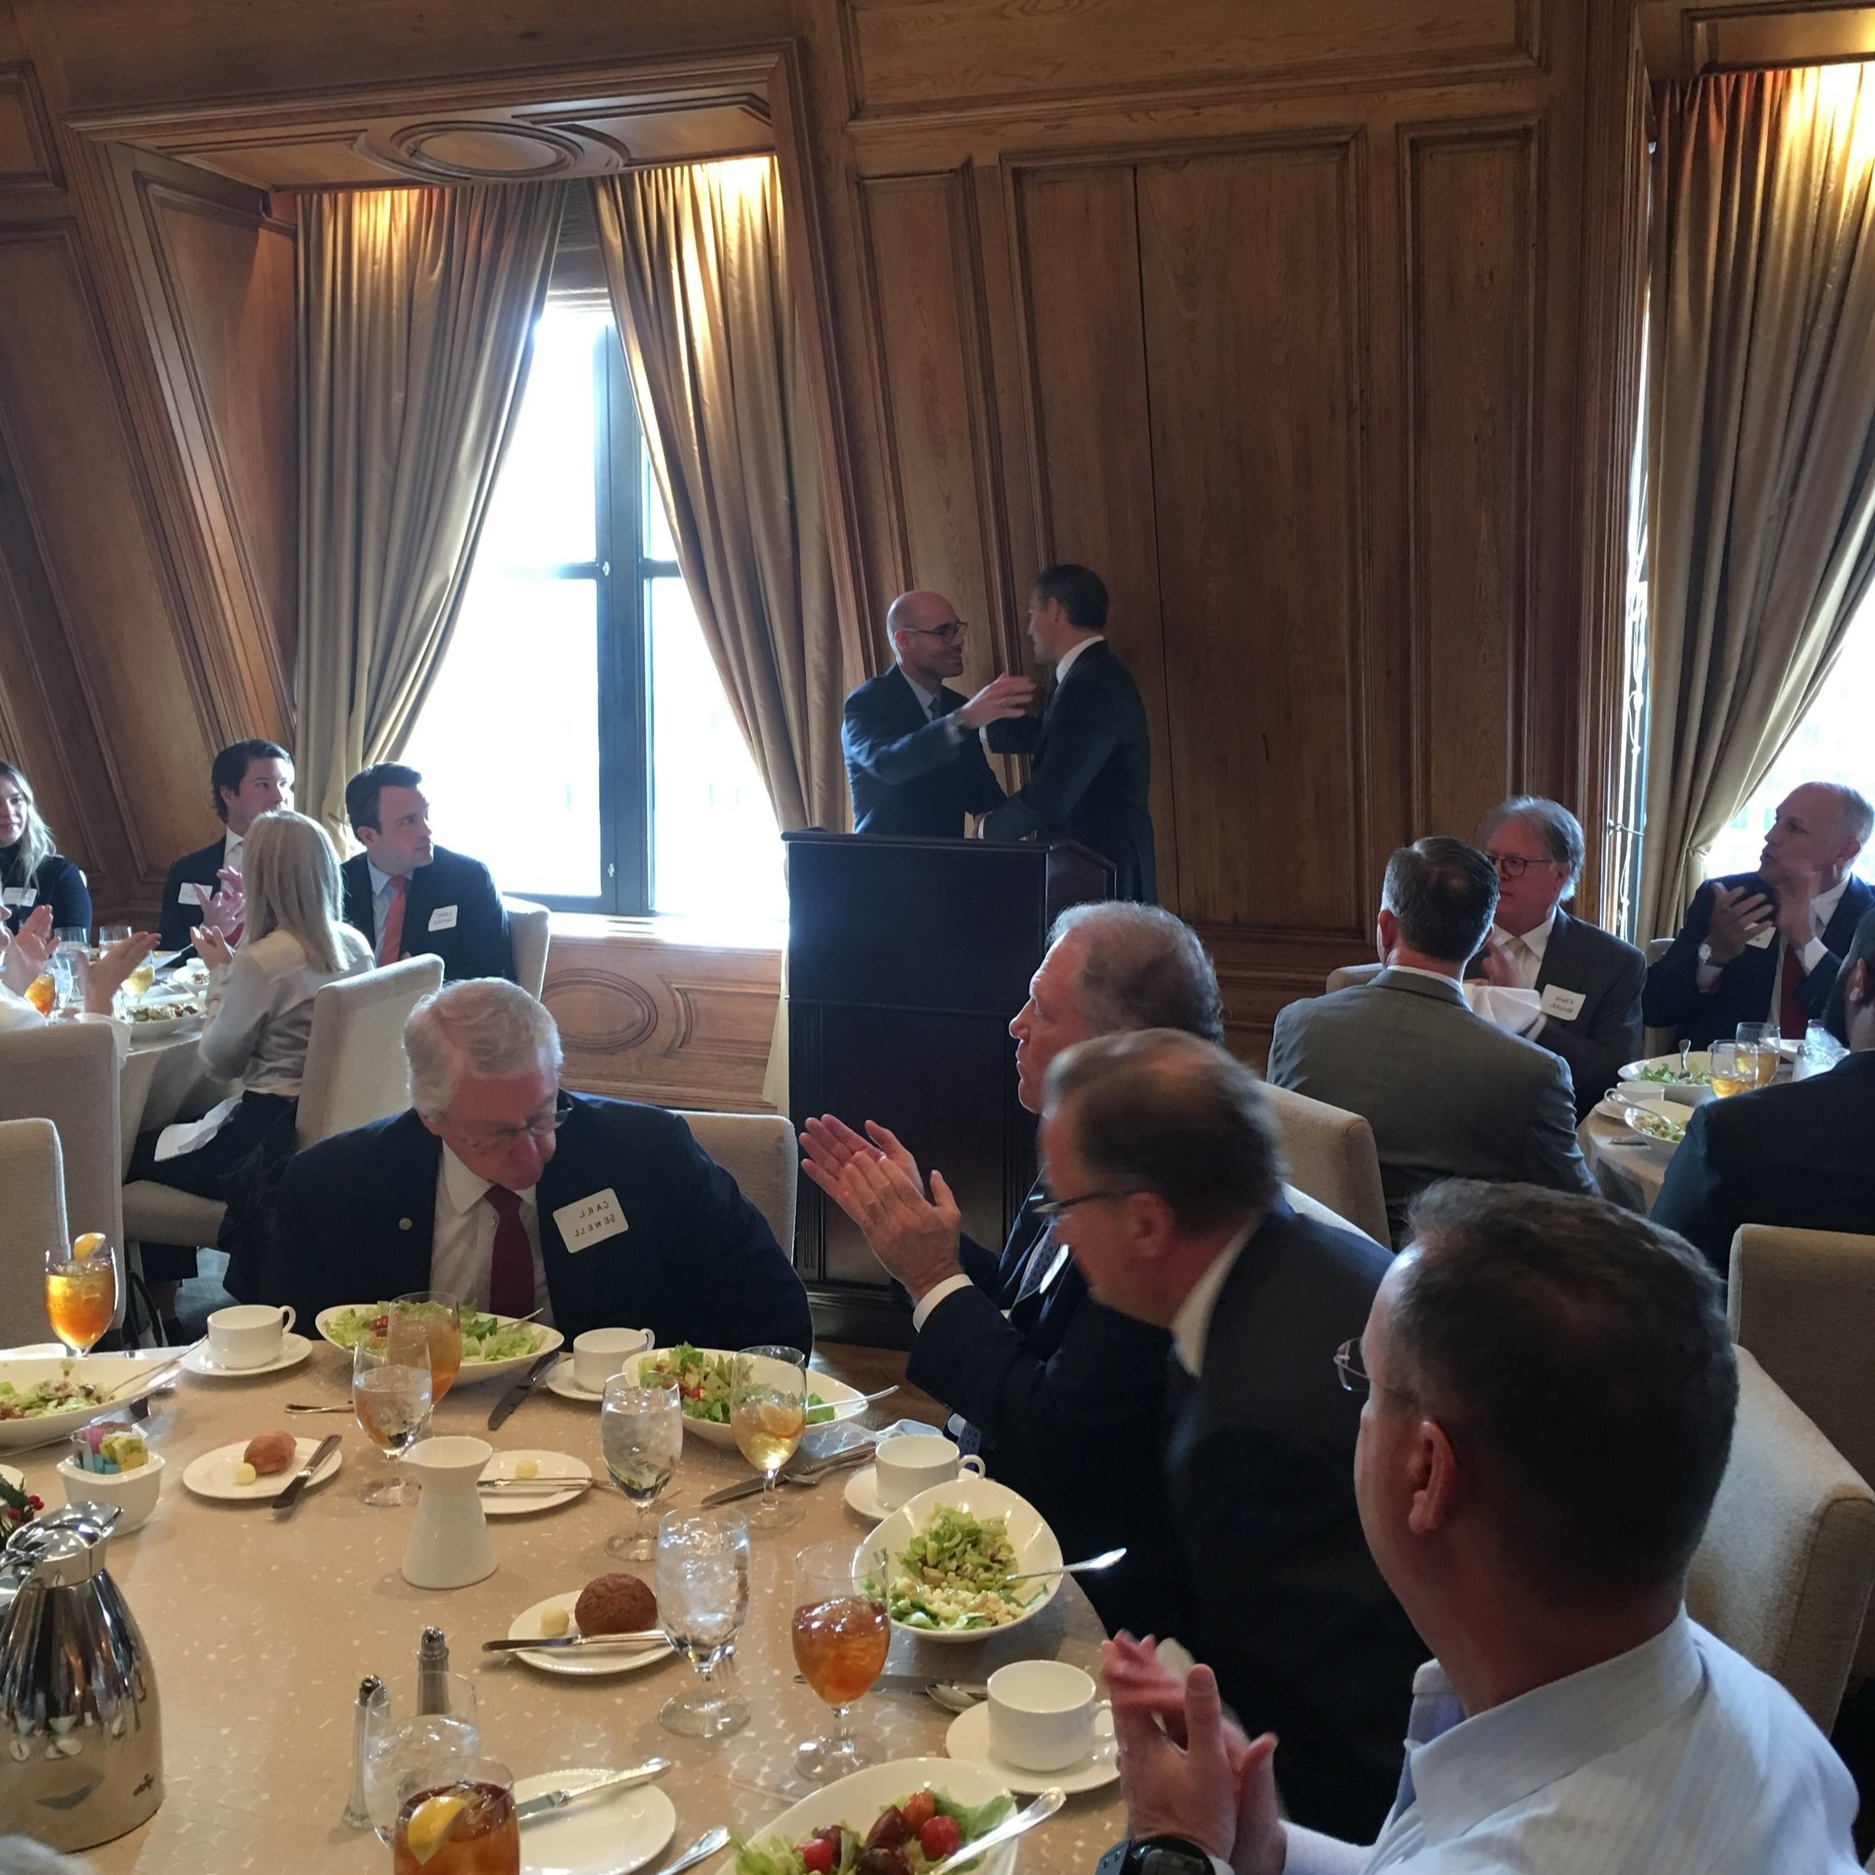 Texas House Speaker Dennis Bonnen and State Representative Morgan Meyer at a luncheon at the Crescent Club in 2018.